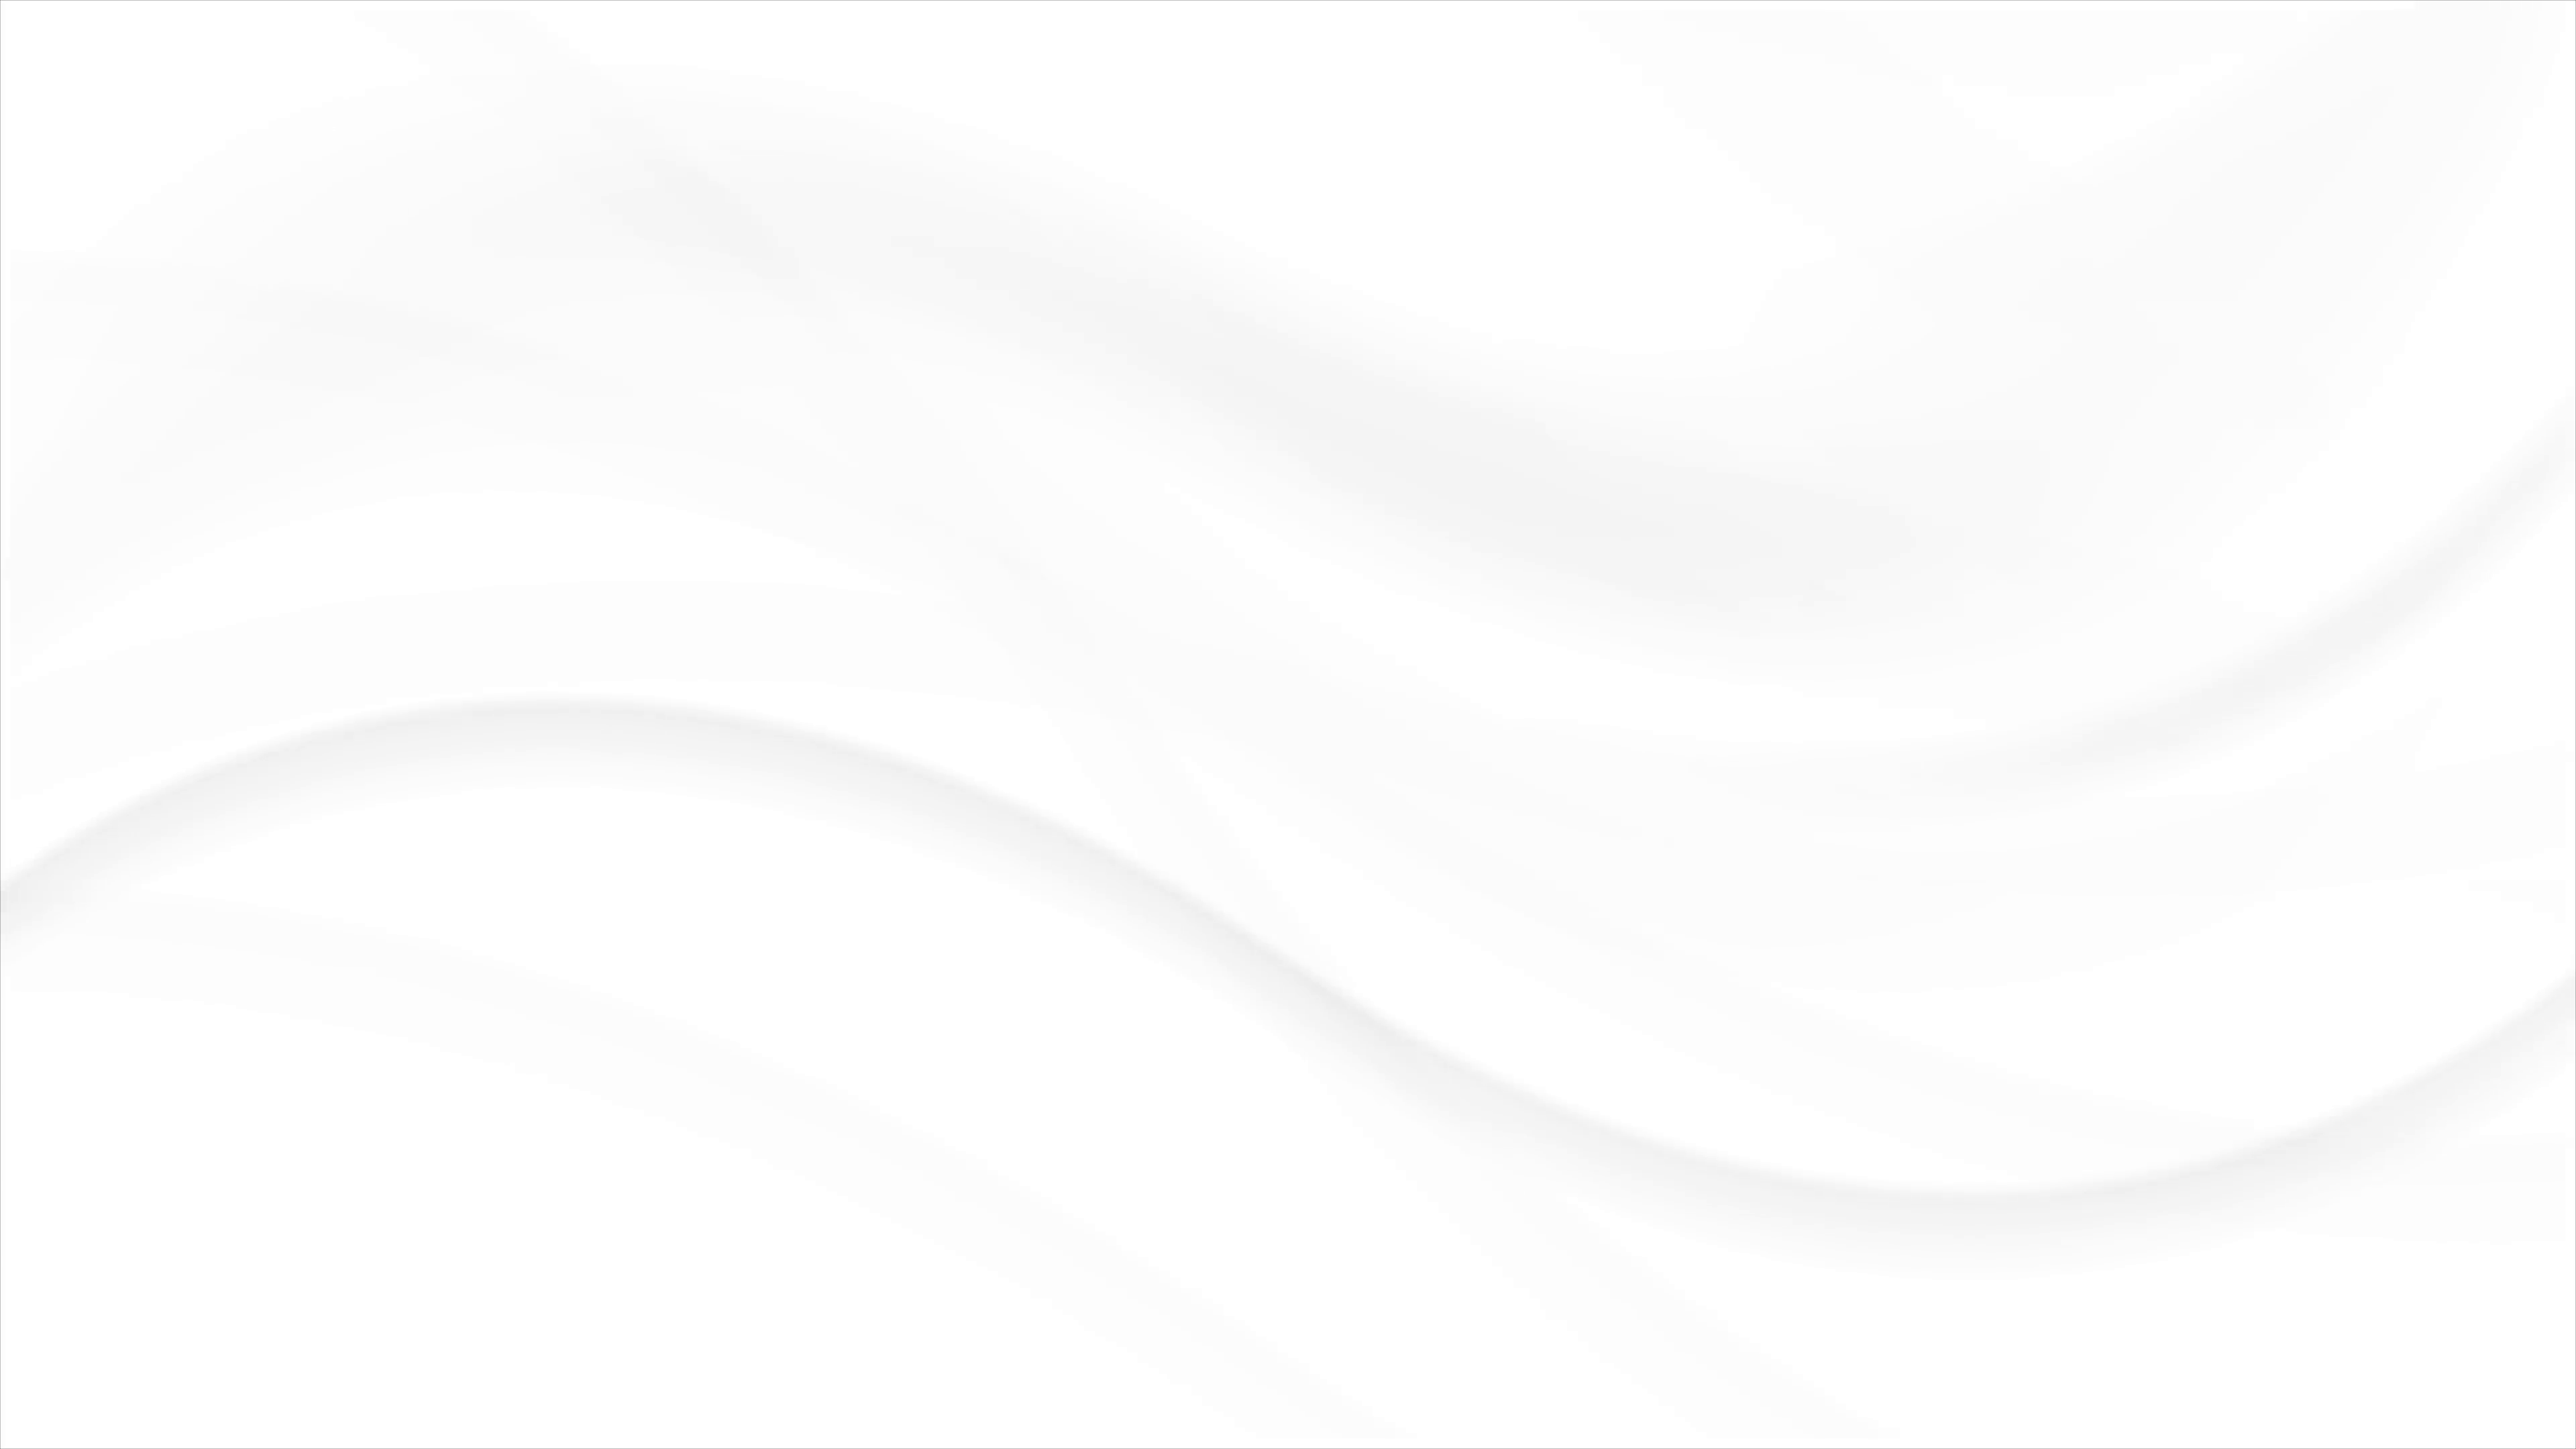 White abstract flowing wavy motion background Video animation 3840x2160